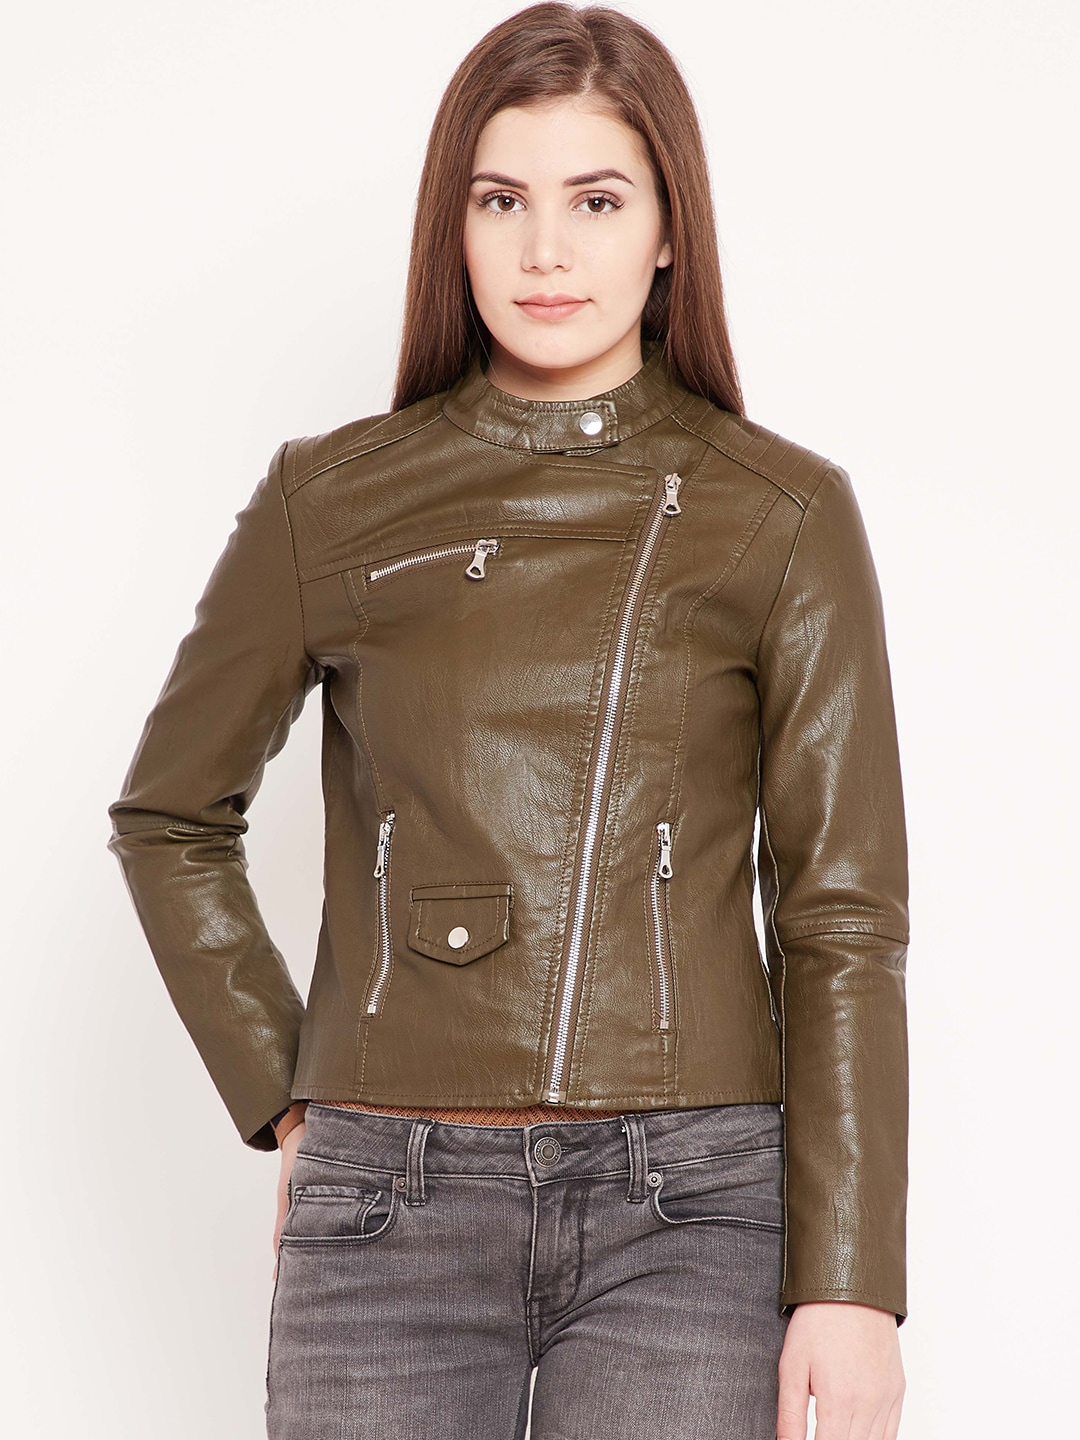 Madame Store Buy Women Clothing At Madame Online Store Myntra